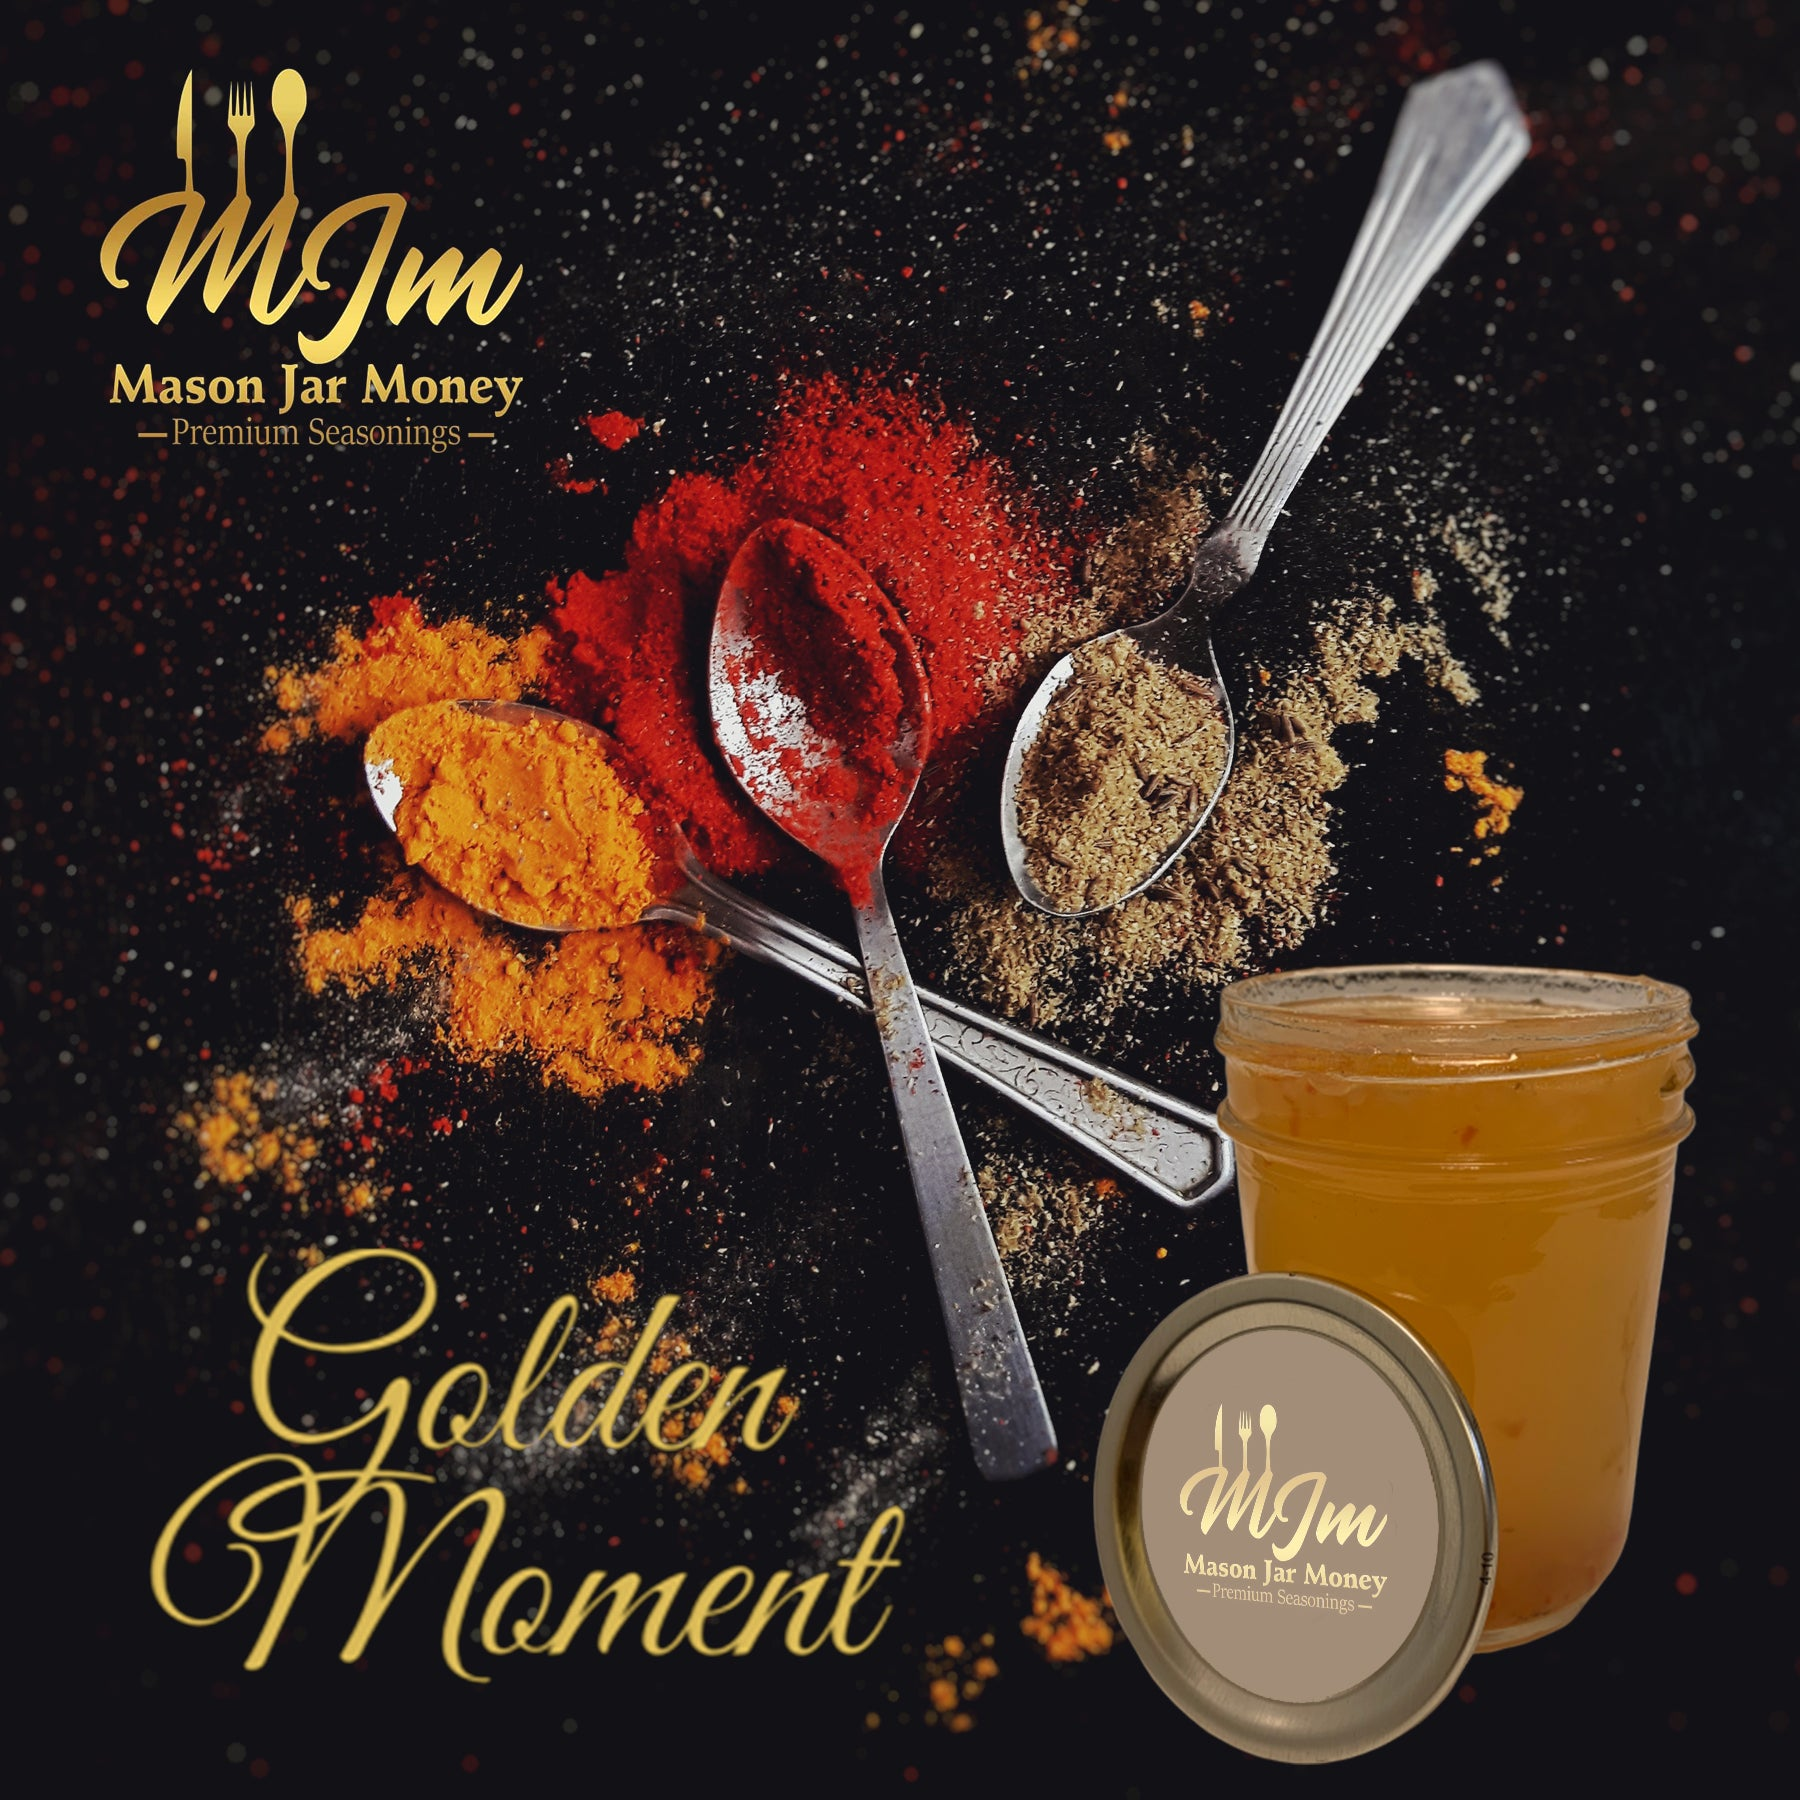 Golden Moment (8oz)